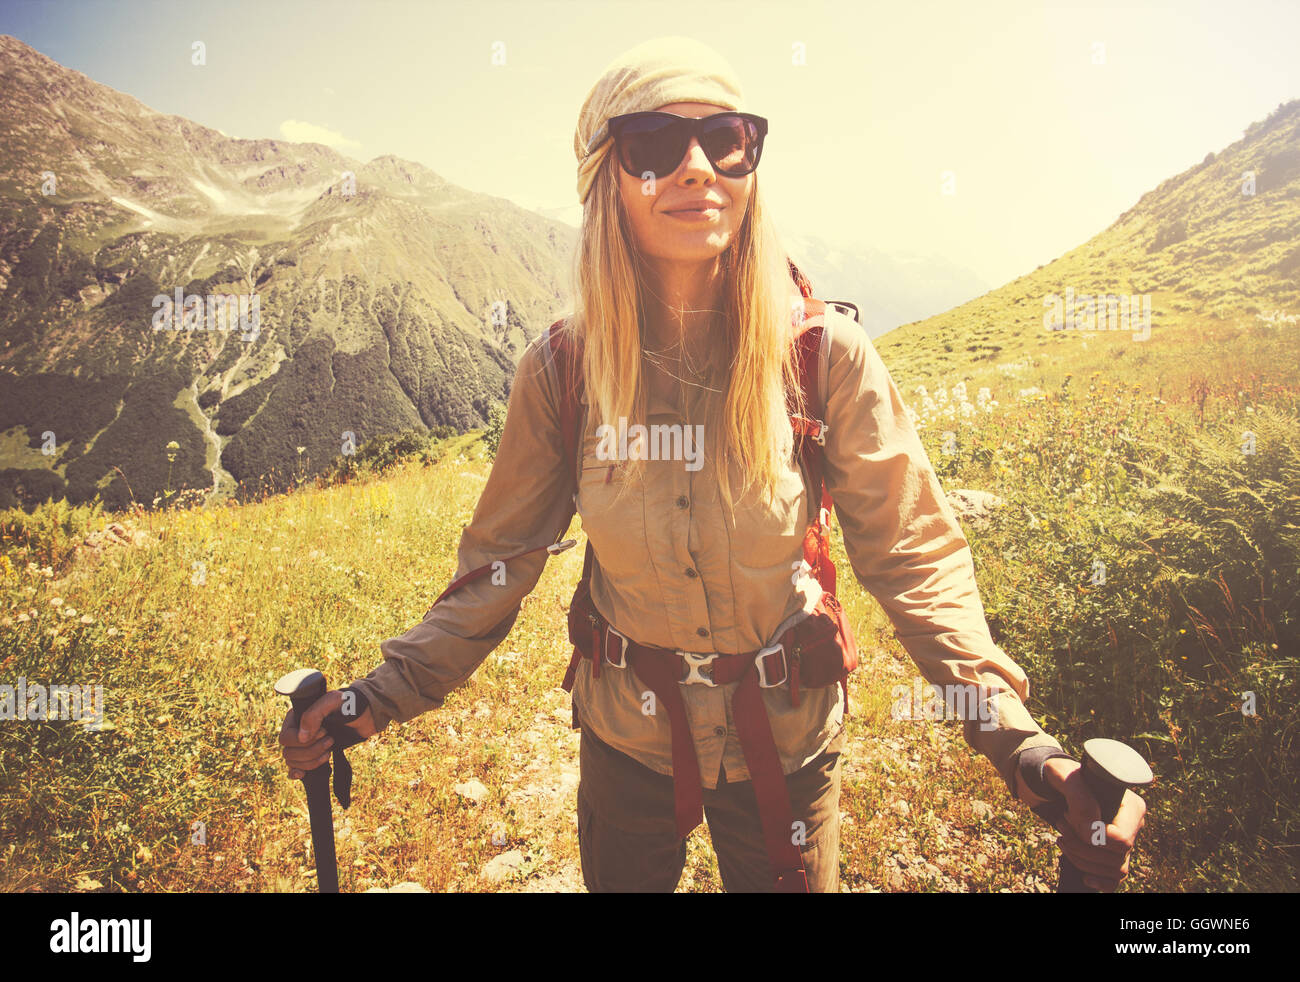 Happy Woman with backpack hiking Travel Lifestyle concept vacations outdoor mountains on background sunny day tone - Stock Image